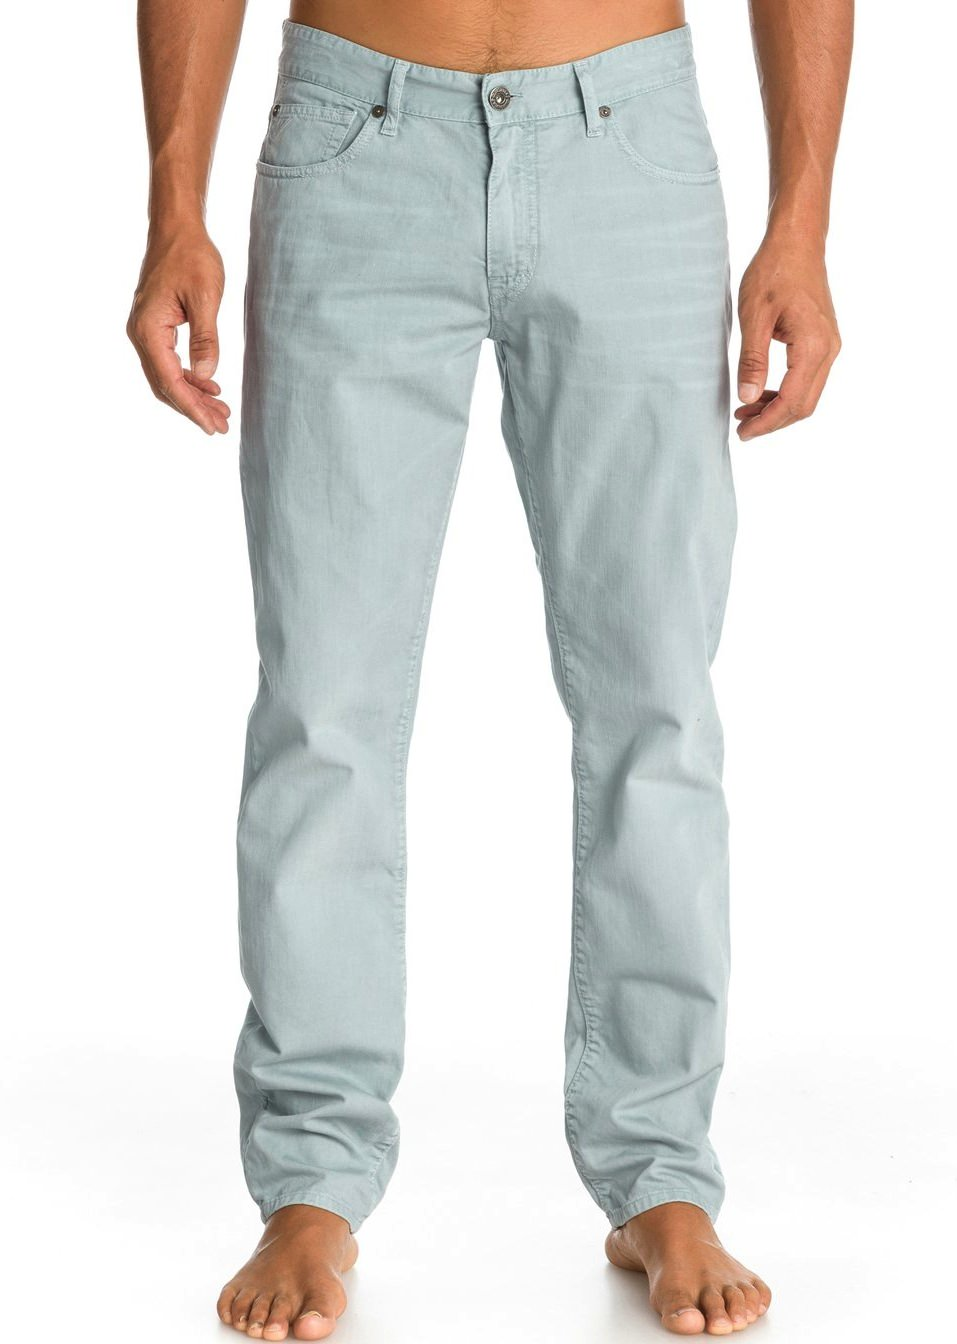 QUIKSILVER JEANS CRAKER - LM SNOWBOARD STORE